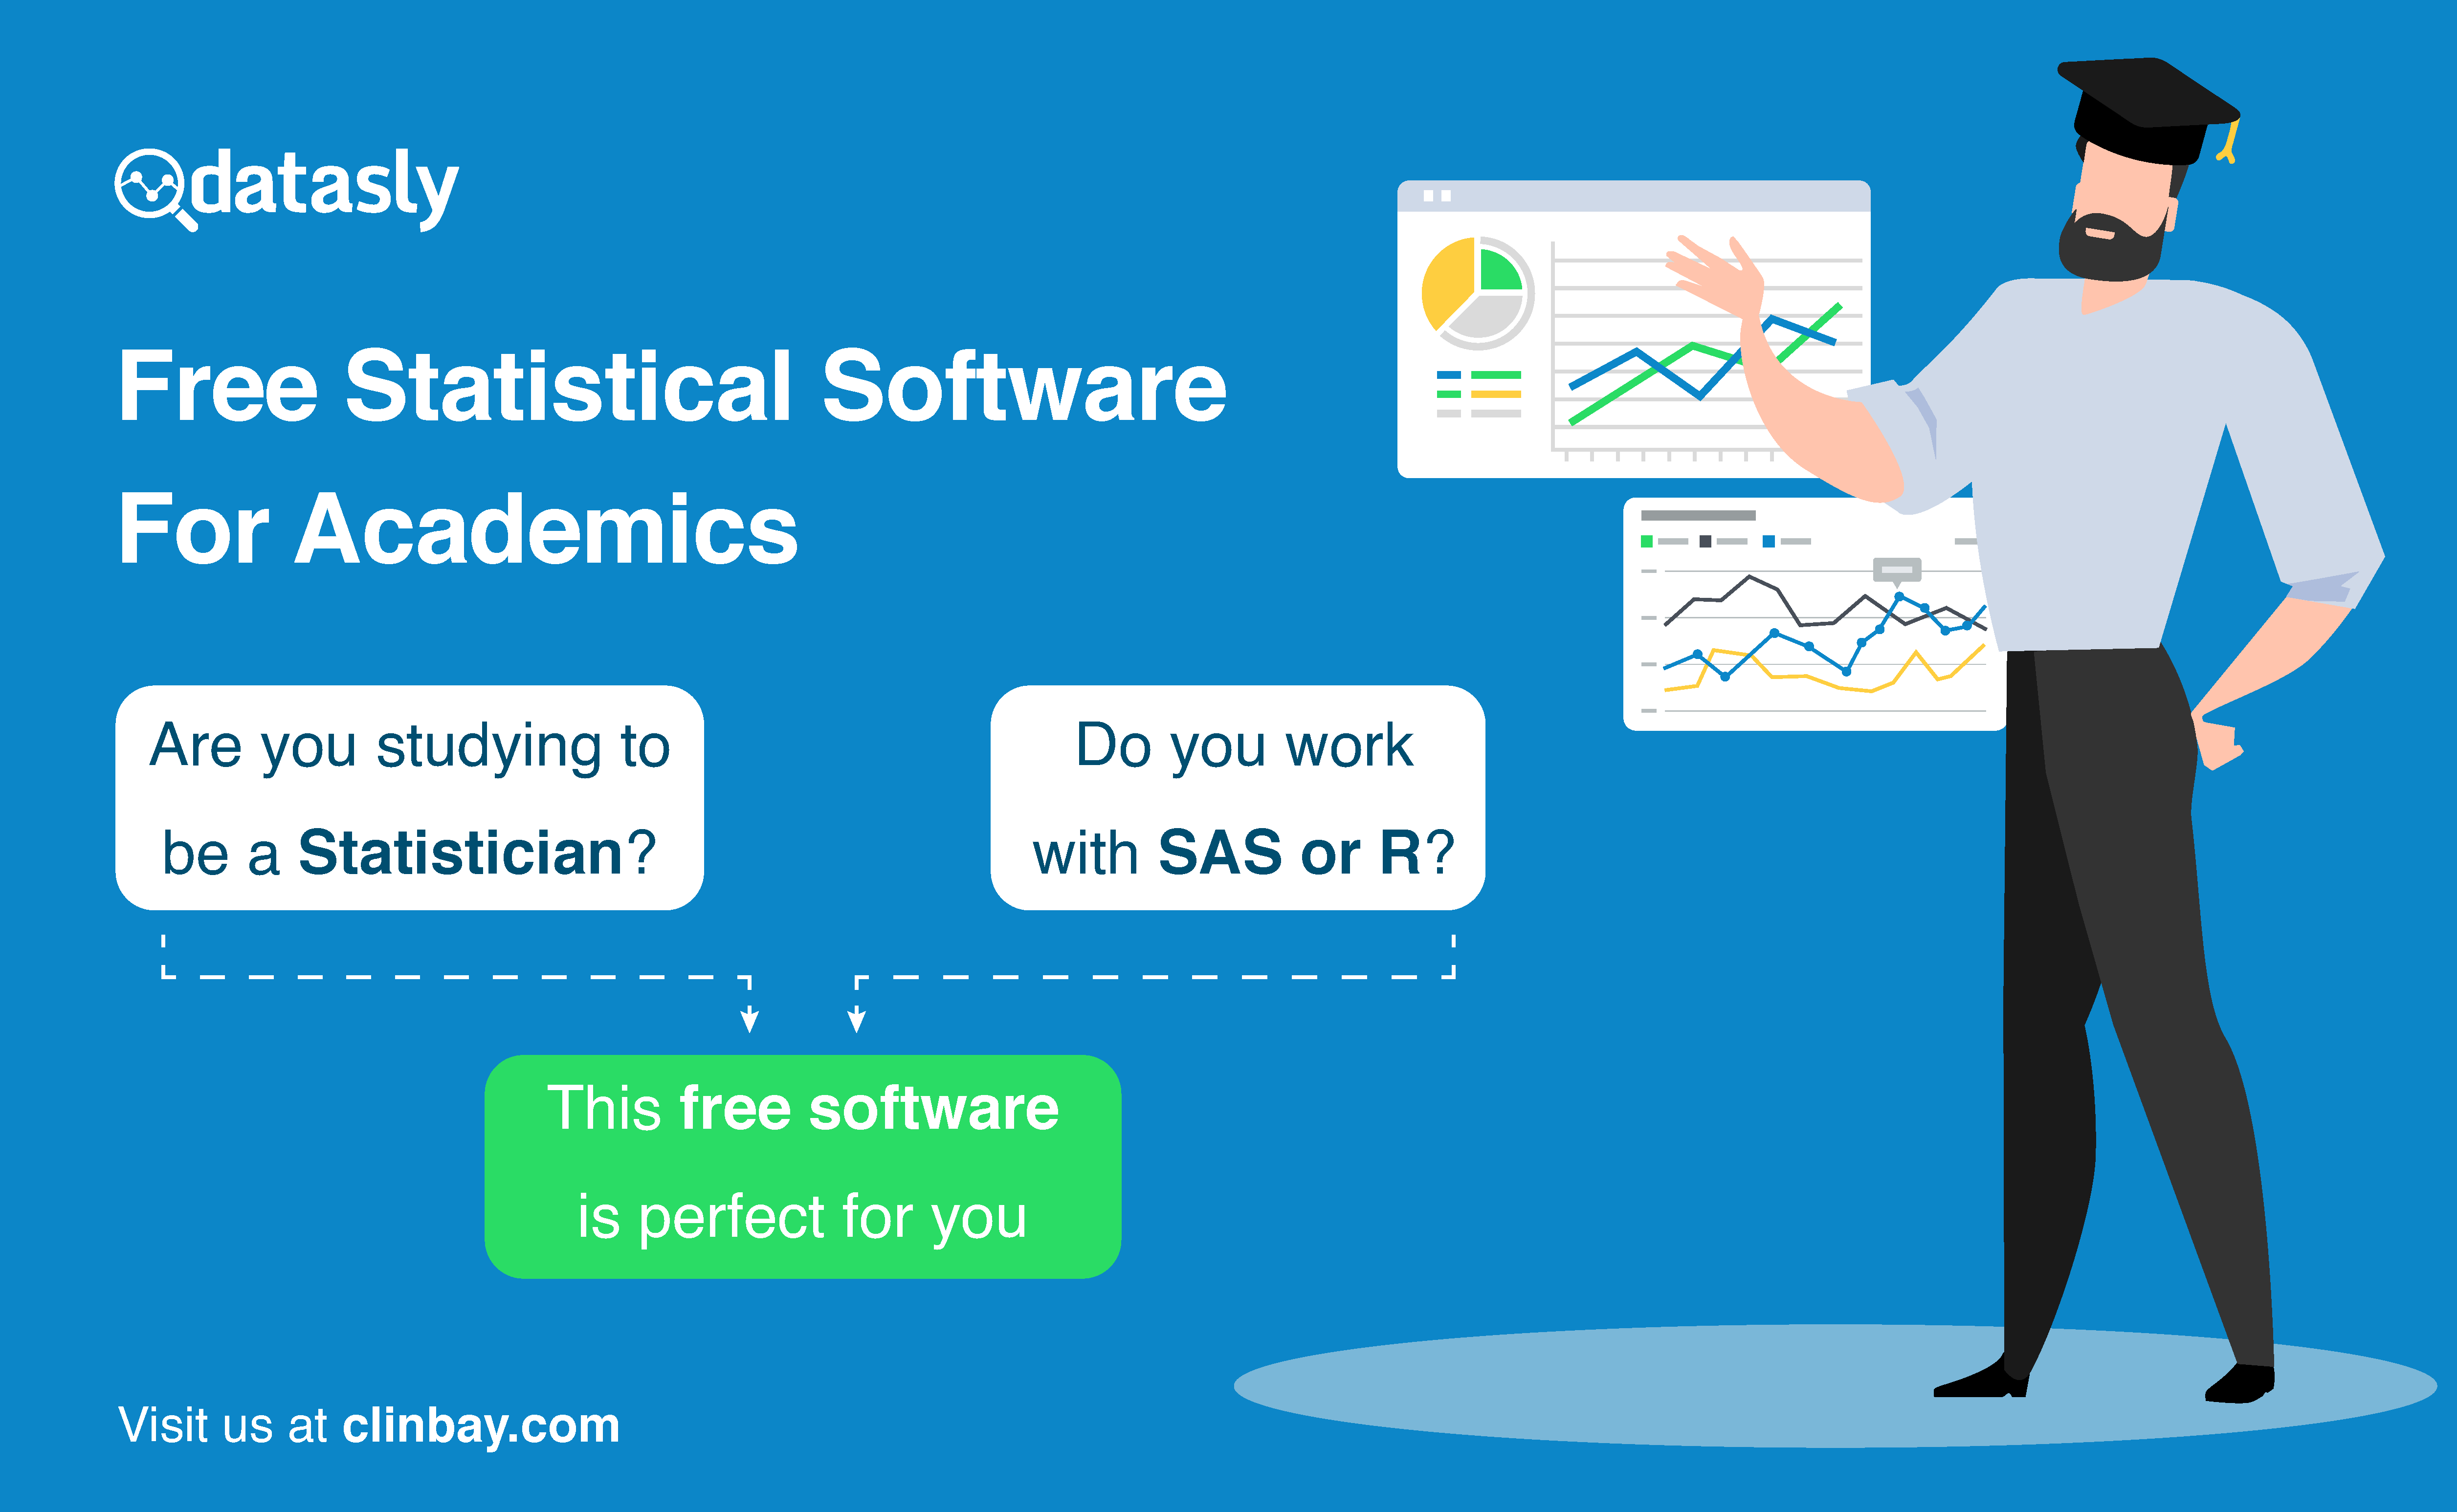 Datasly is free for academic users!